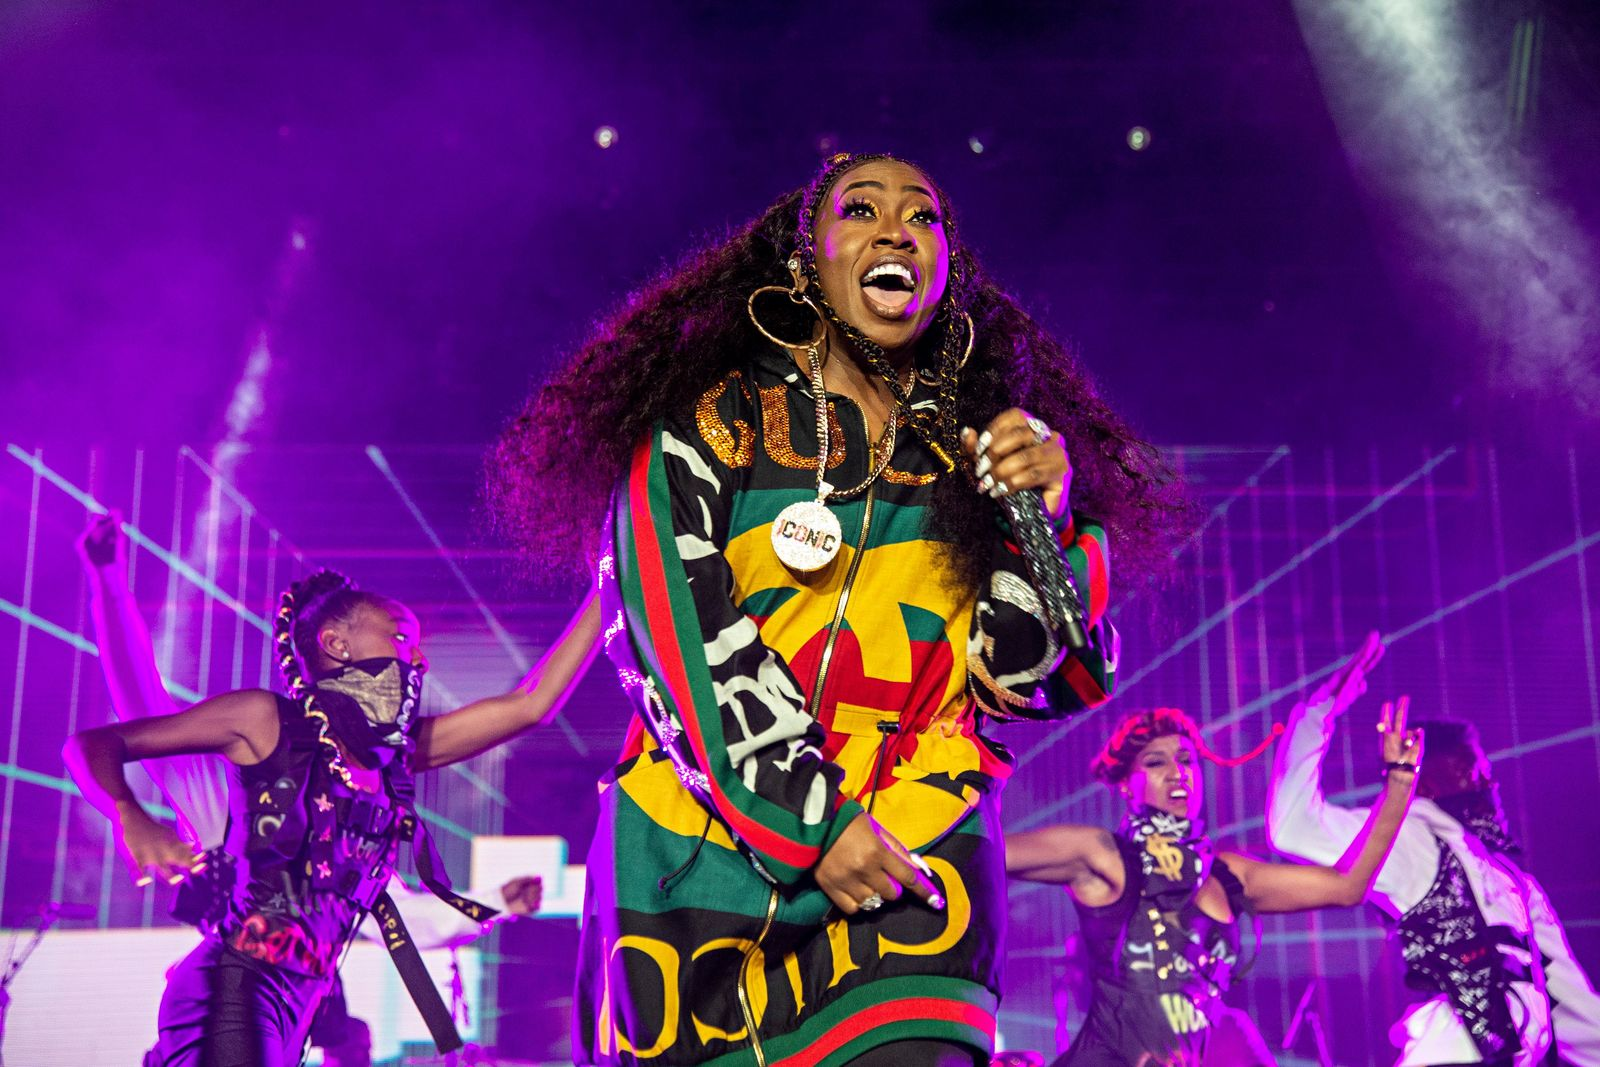 FILE - In this July 7, 2018 file photo, Missy Elliott performs at the 2018 Essence Festival in New Orleans. Missy Elliott is making history as the first female rapper inducted into the Songwriters Hall of Fame, whose 2019 class also includes legendary British singer Cat Stevens and country-folk icon John Prine. The organization announced the new group of inductees Saturday, Jan. 12, 2019. (Photo by Amy Harris/Invision/AP, File)